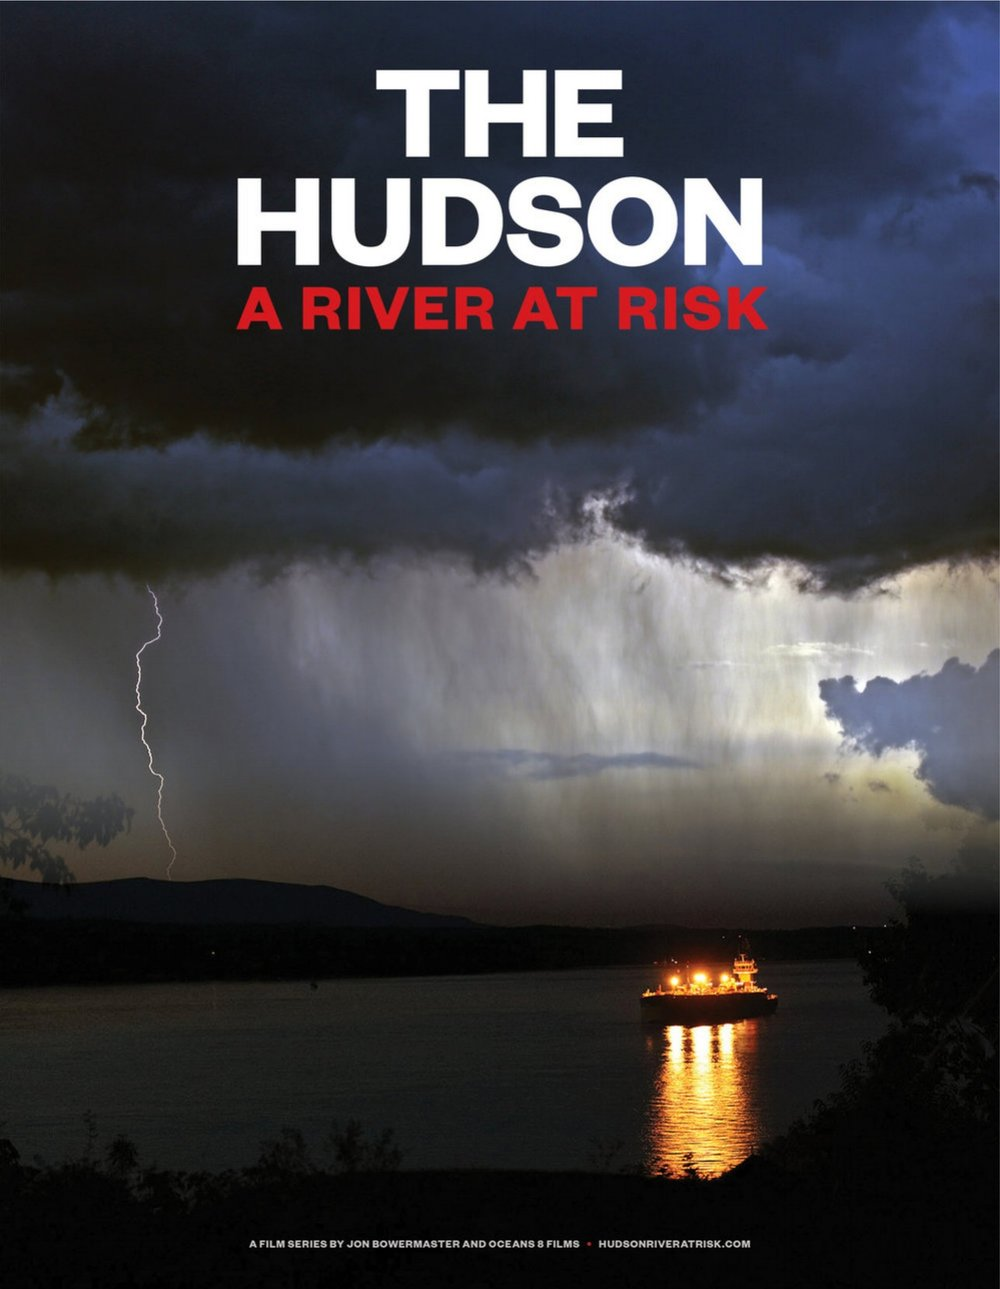 Hudson River at Risk environmental film series